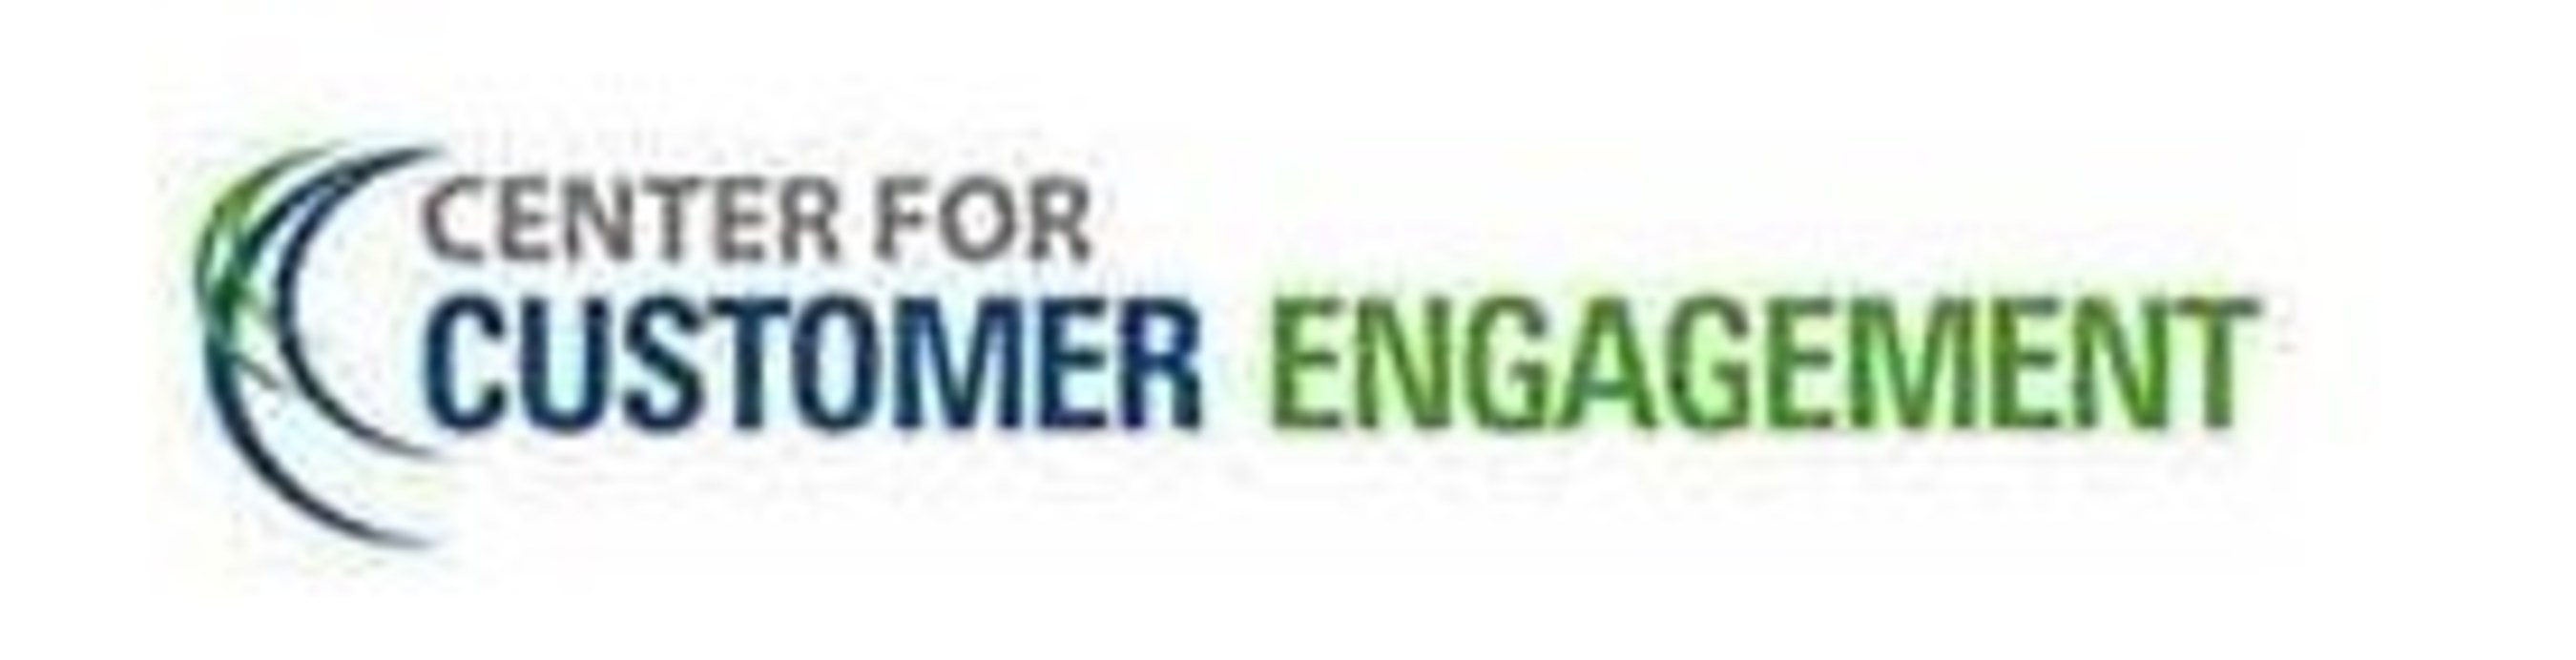 Center for Customer Engagement Announces Winners of Major Awards for Customer Advocacy and Engagement Professionals